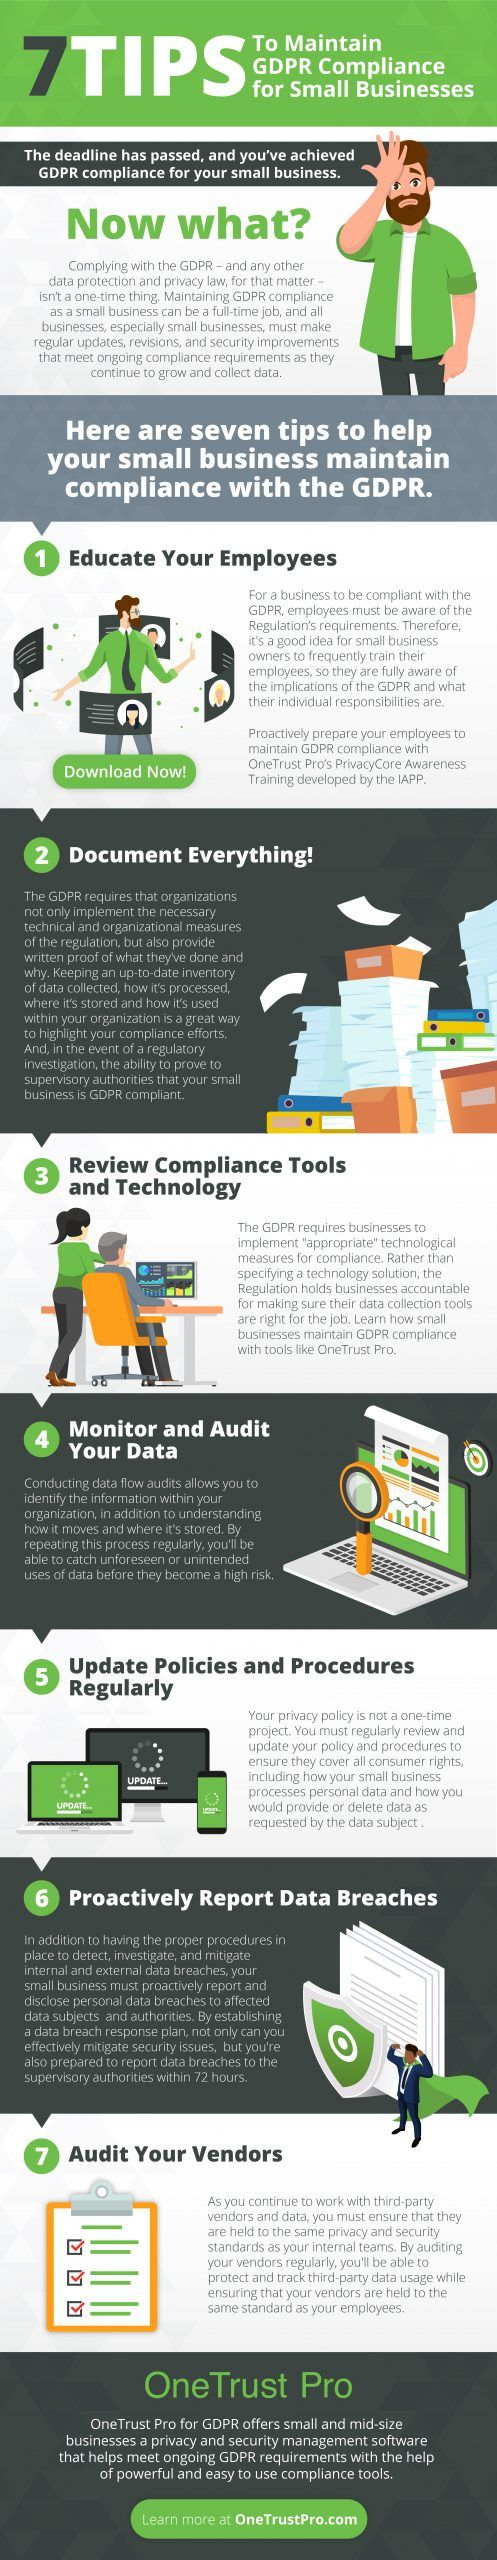 [Infographic] 7 Tips to Maintain GDPR Compliance for Small Businesses